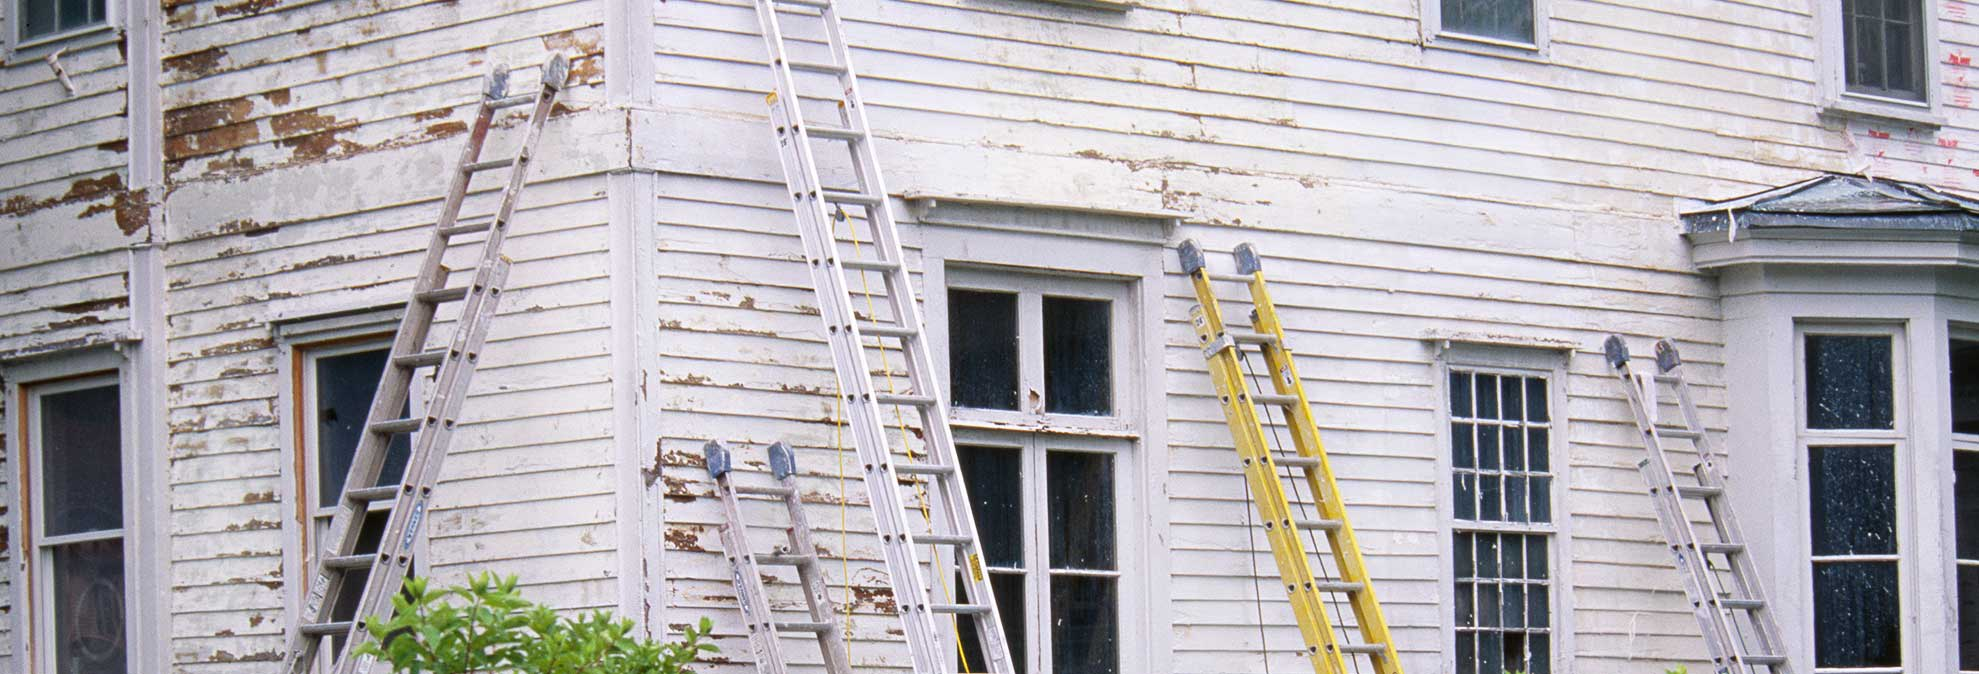 How to tell if you have lead paint in your home consumer reports for Lead paint on exterior of house